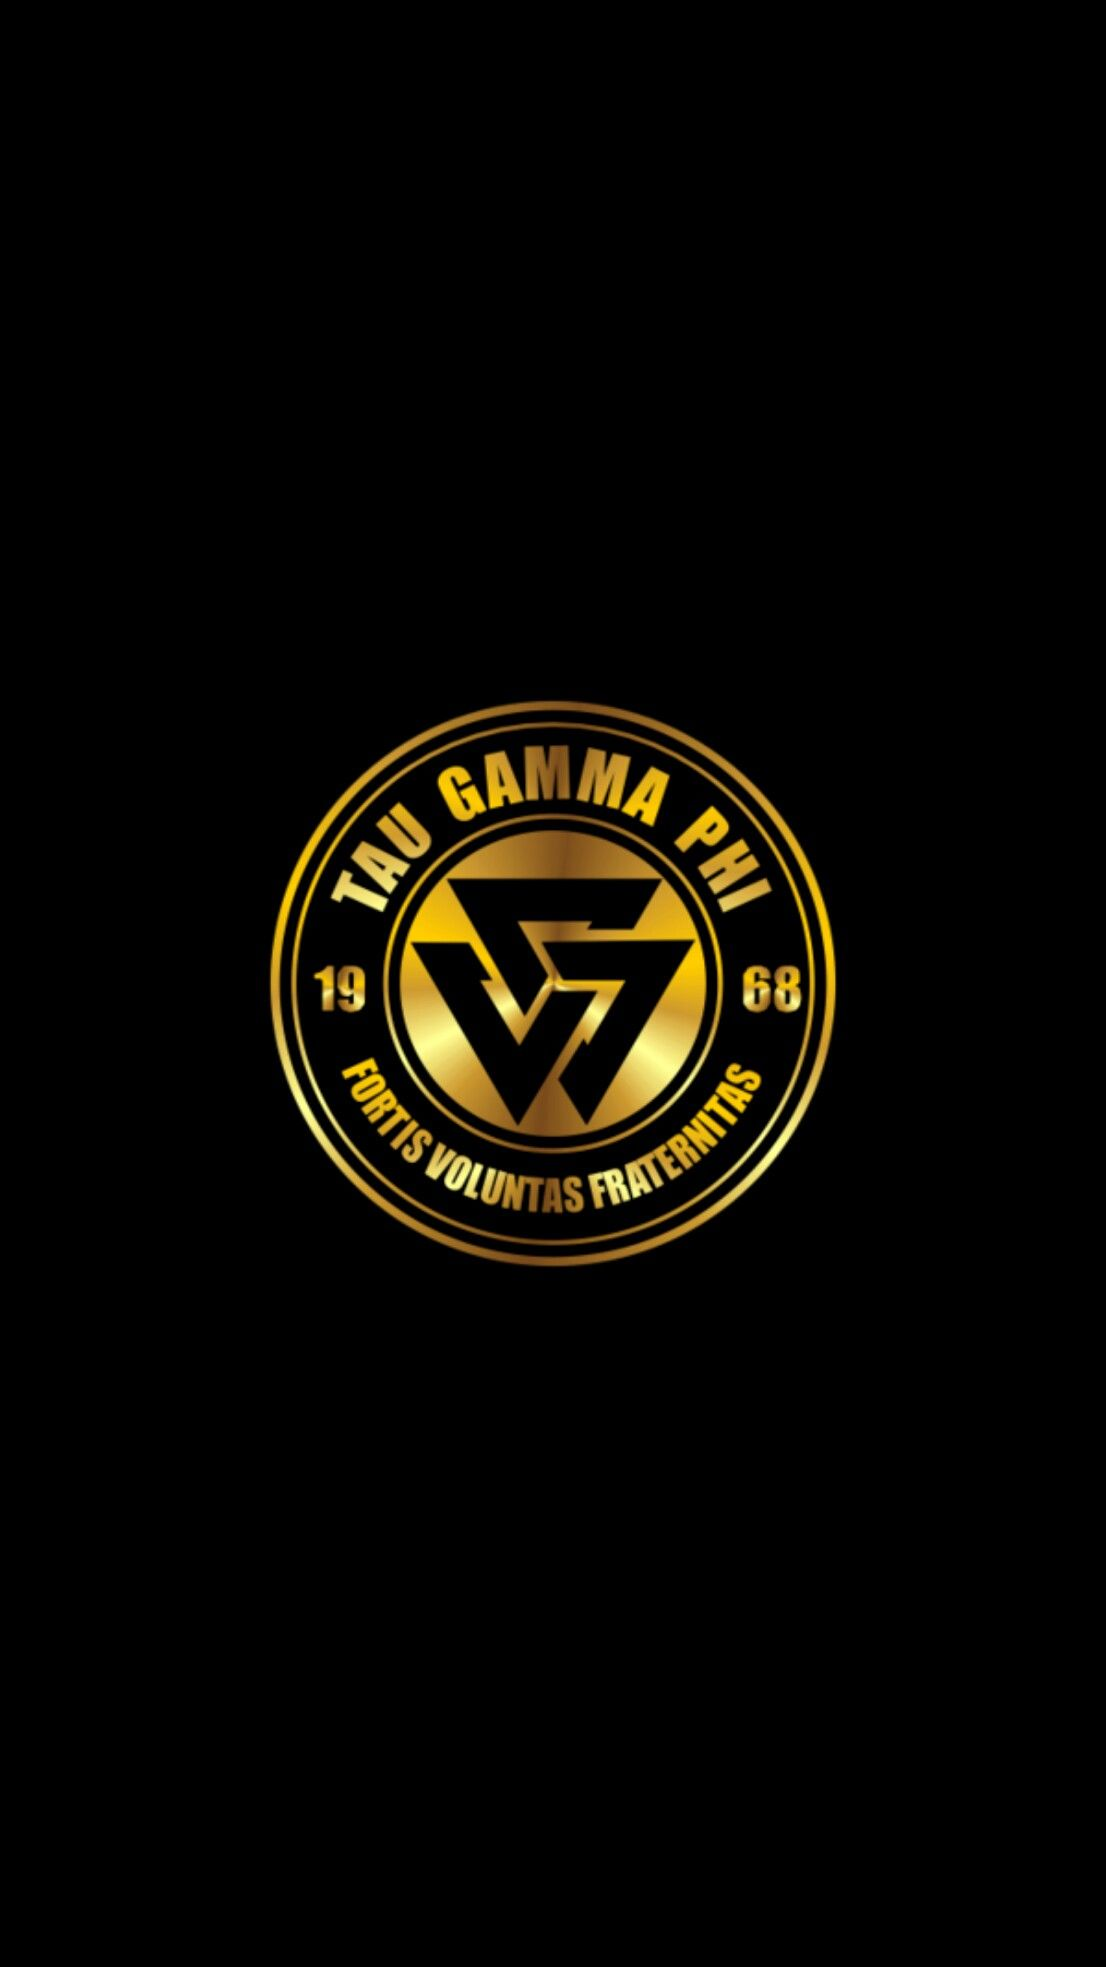 Triskelion Tau Gamma Wallpaper Gold 50 Android Iphone Tau Gamma Gamma Phi Tau